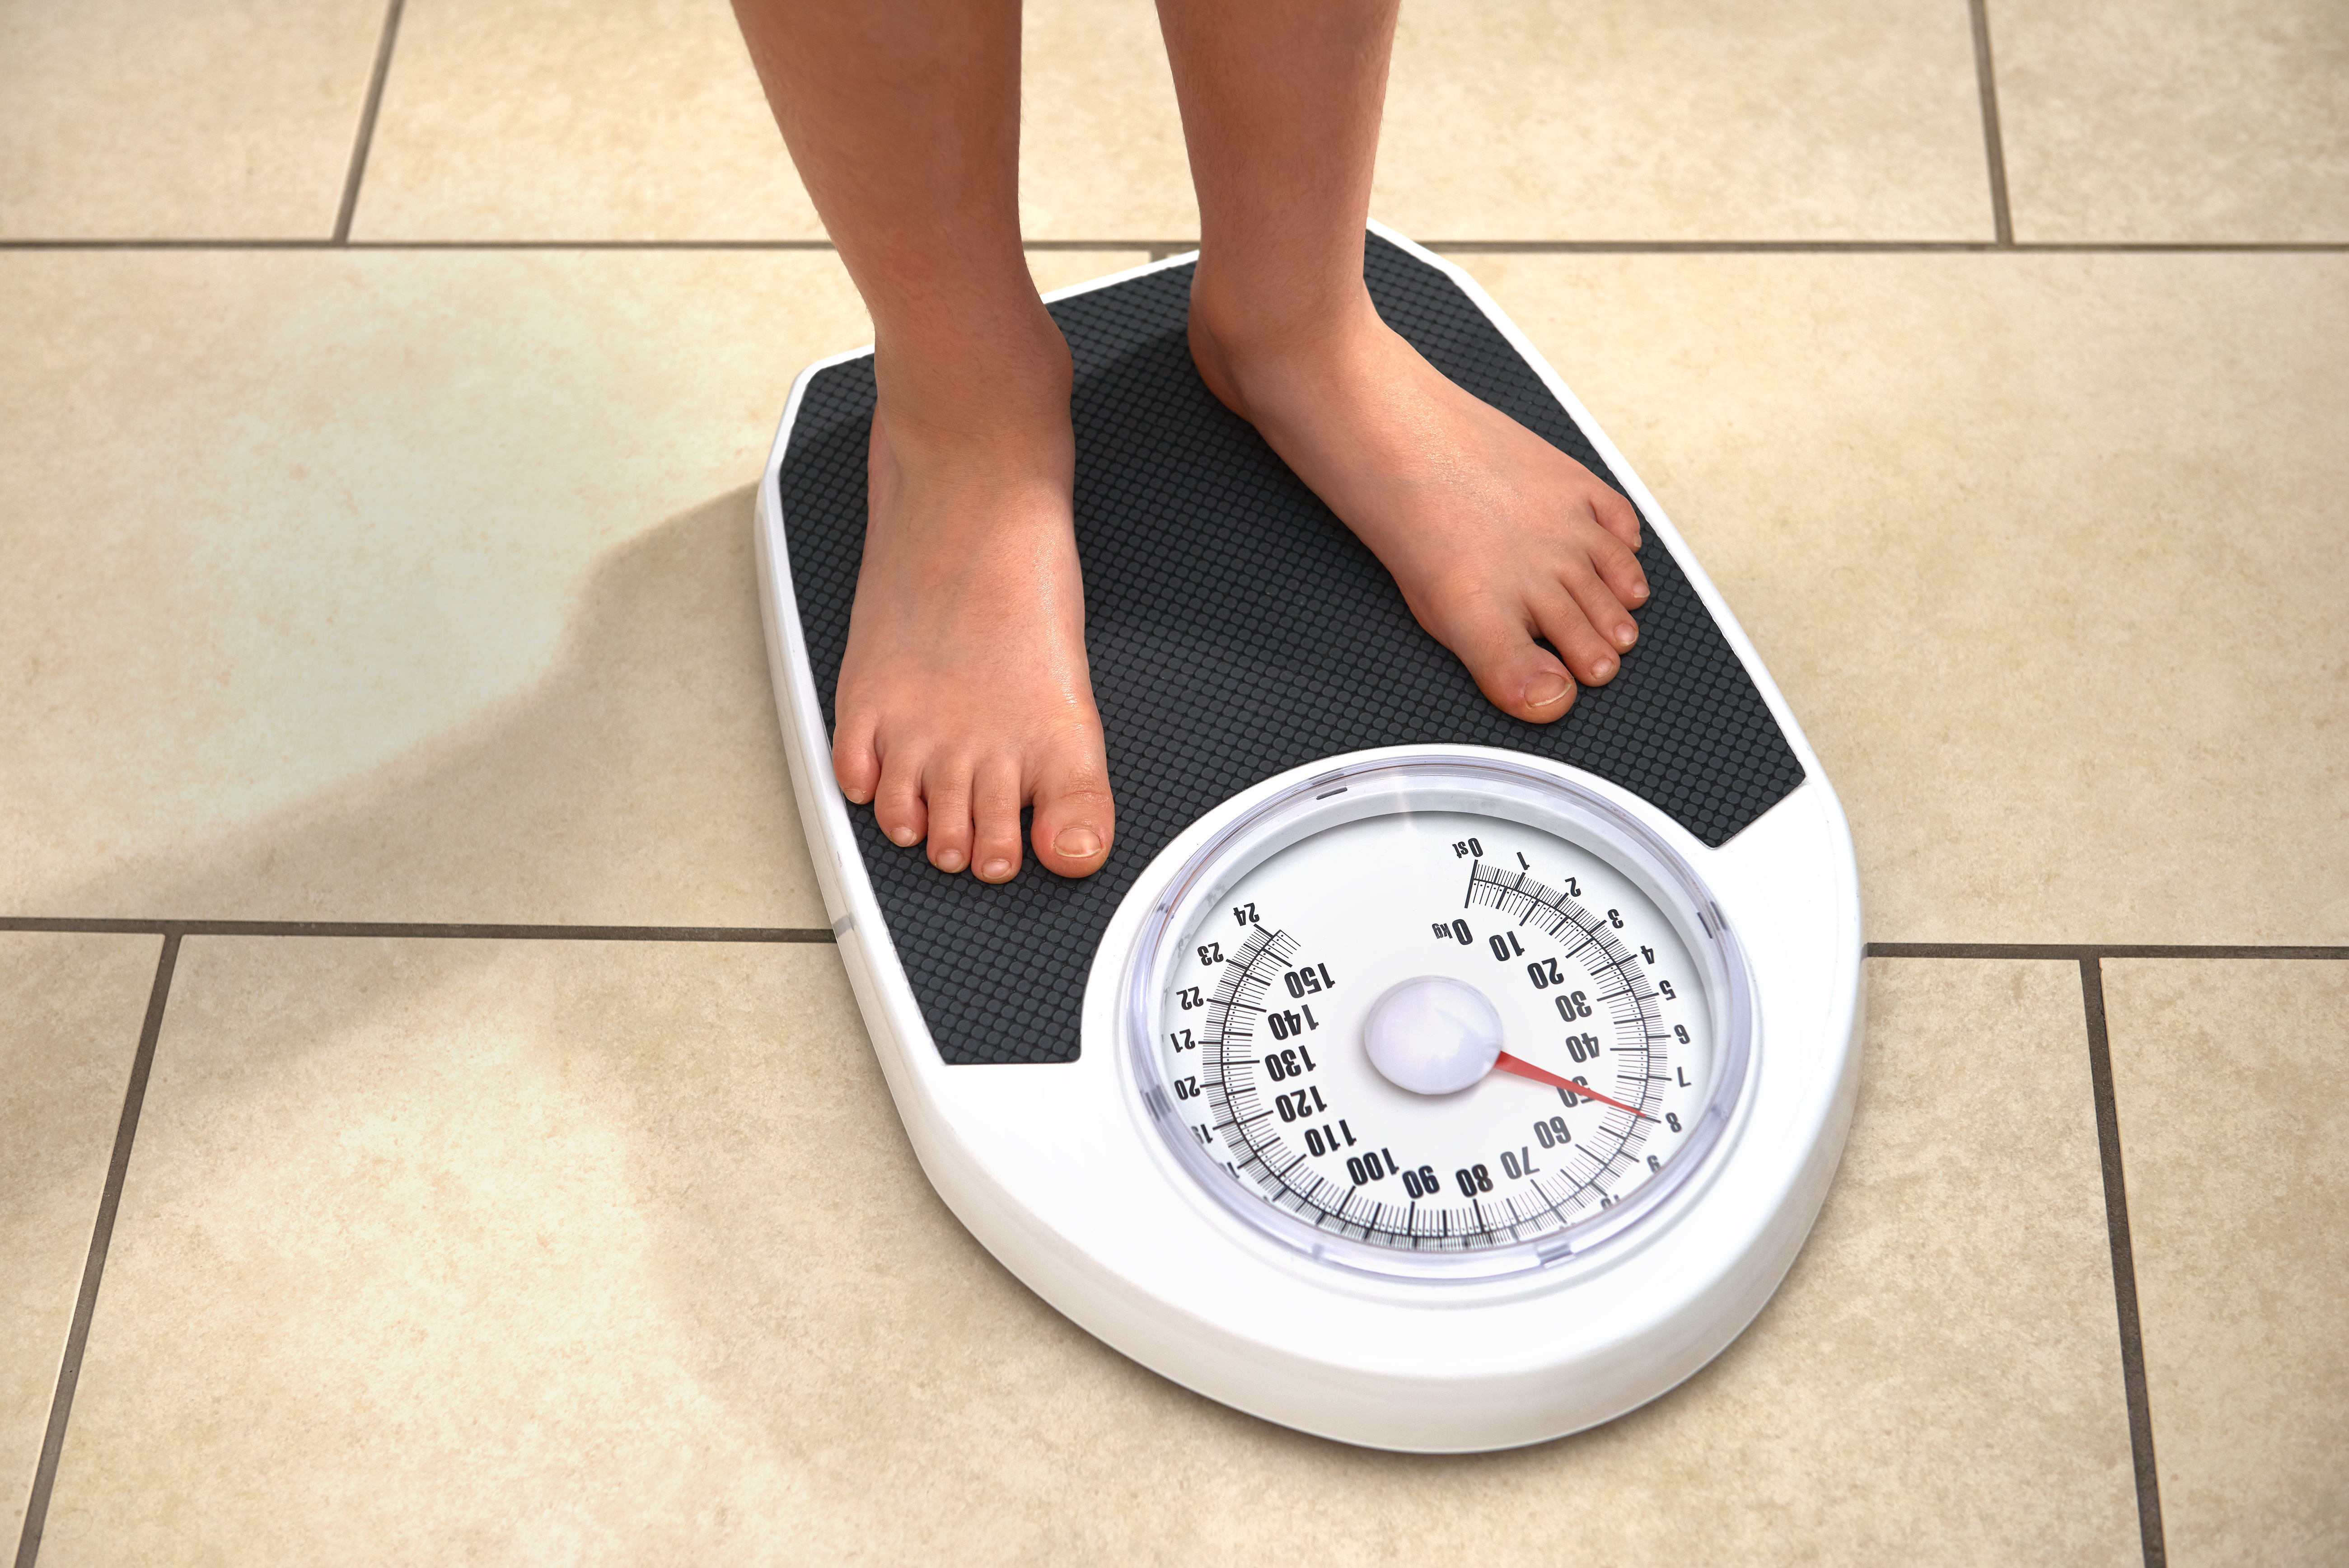 Some 42% of American adults — nearly 80 million people — live with obesity. (Getty Images)